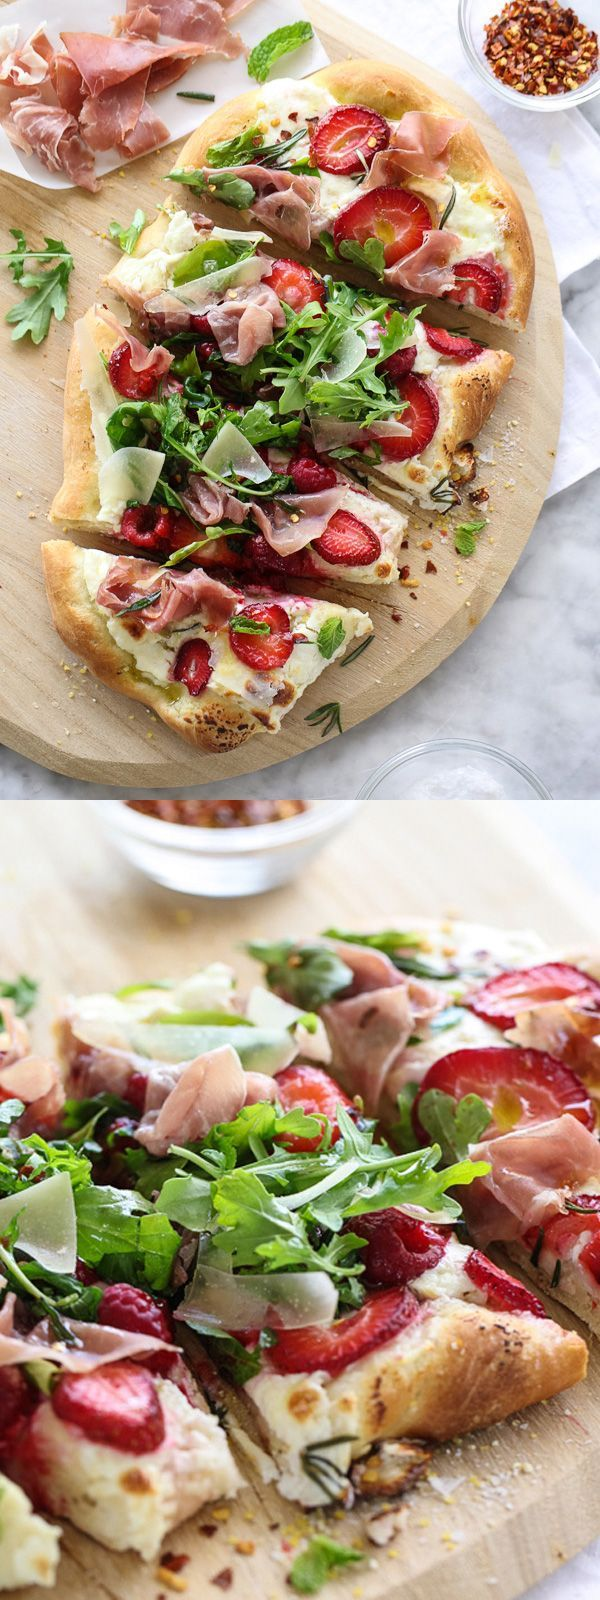 Prosciutto Pizza with Berries and Arugula is salty, sweet and a favorite dinner treat | foodiecrush.com